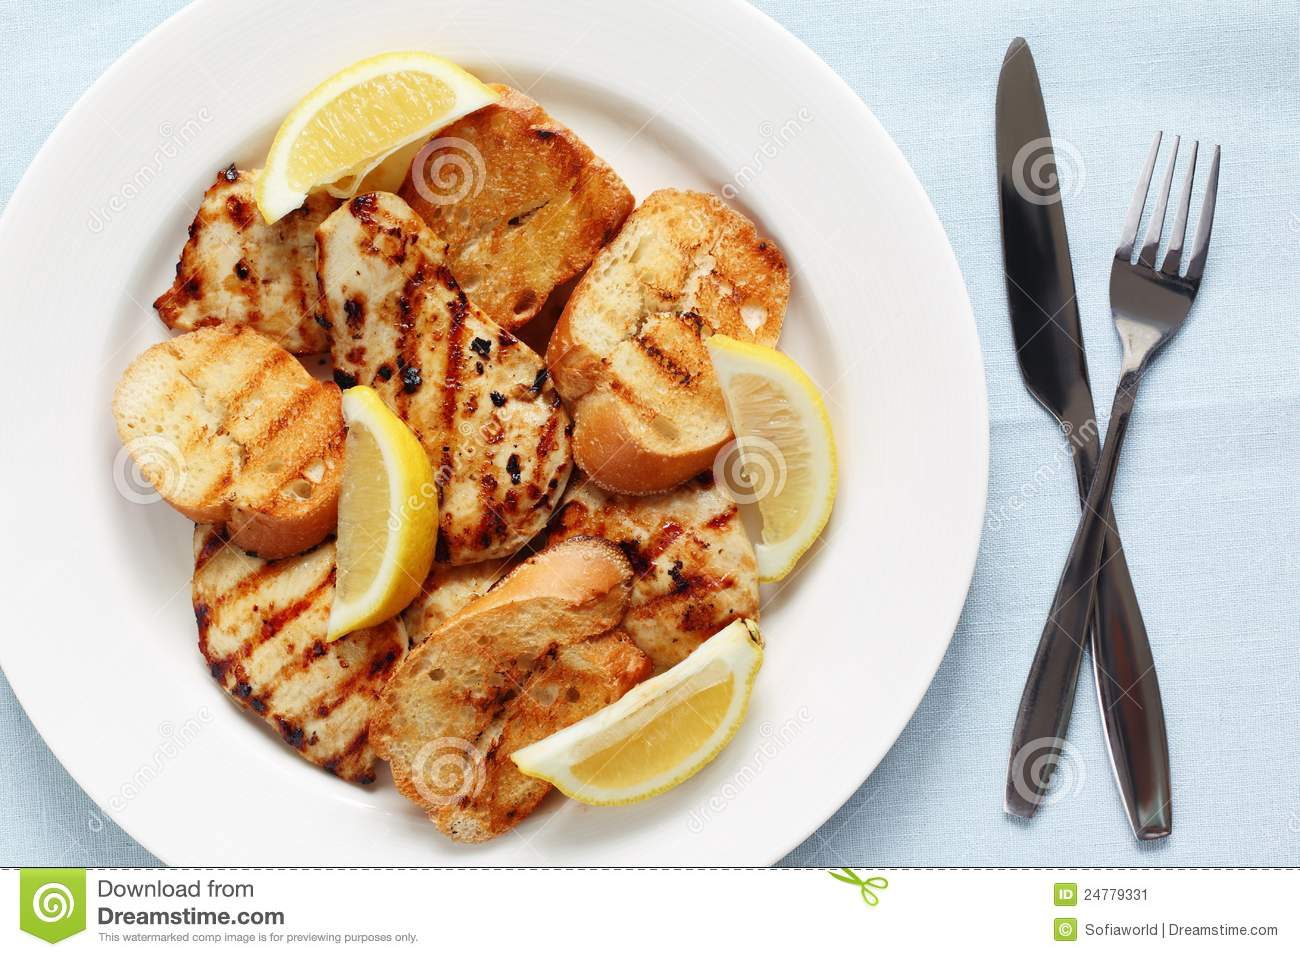 Grilled Lemon Chicken With Garlic Bread Stock Image - Image: 24779331